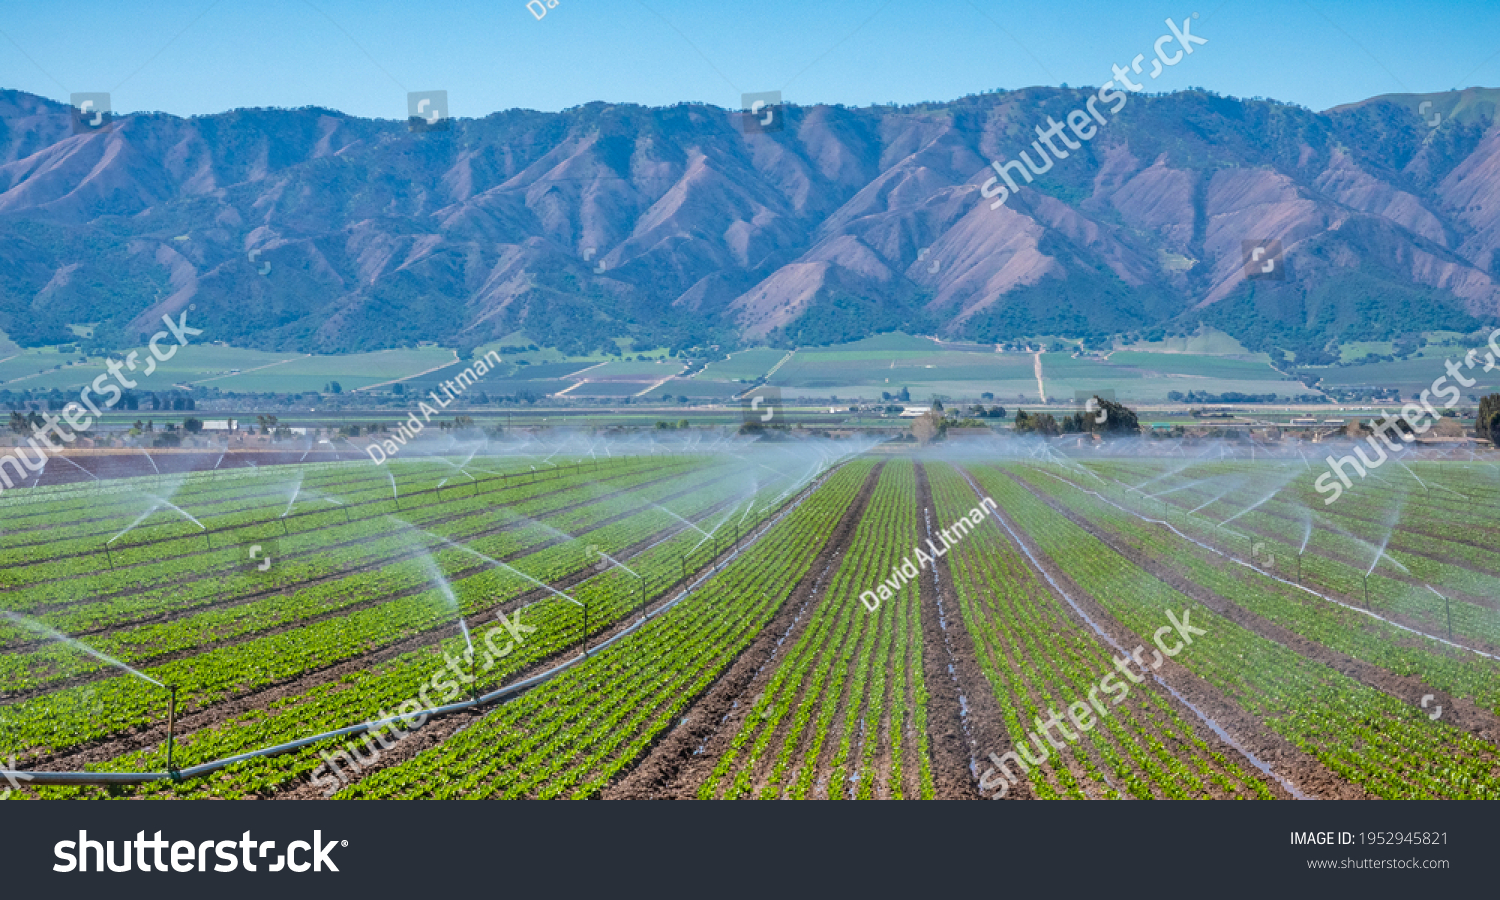 A field irrigation sprinkler system waters rows of lettuce crops on farmland in the Salinas Valley of central California, in Monterey County.